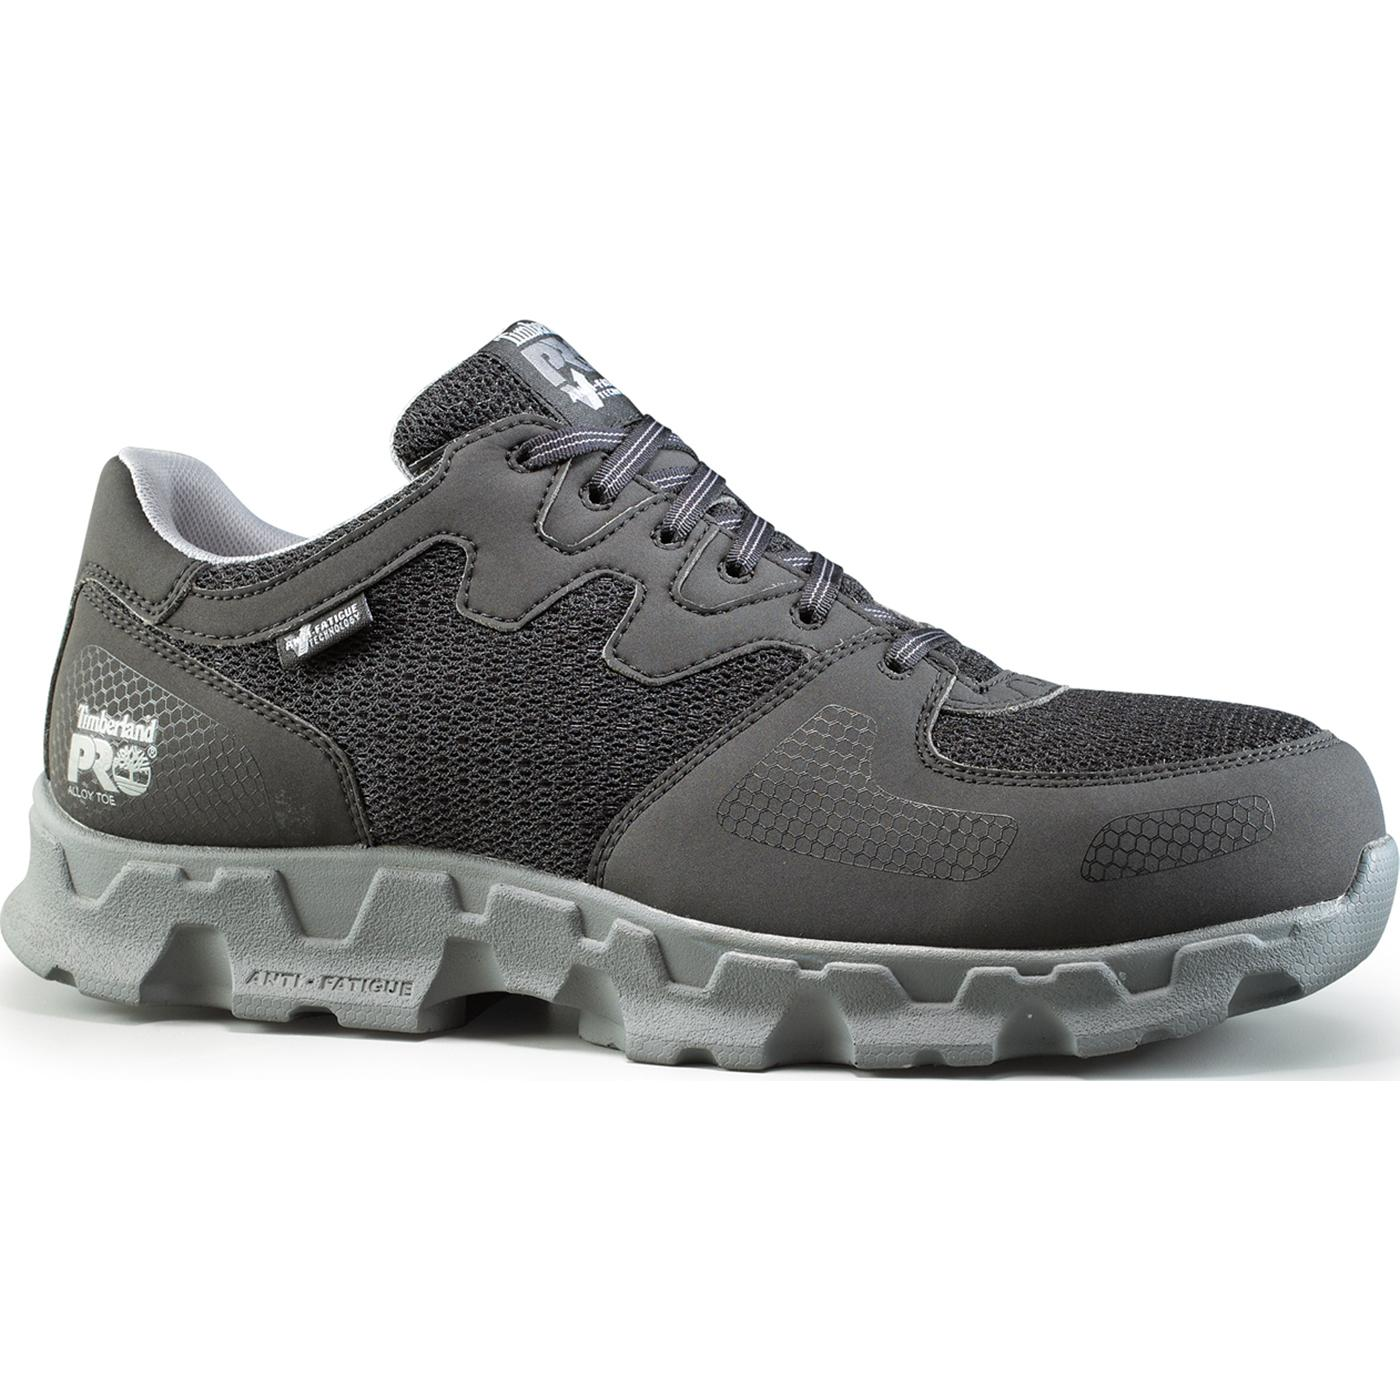 Timberland Pro Powertrain Alloy Toe Static Dissipative Work Athletic Shoe